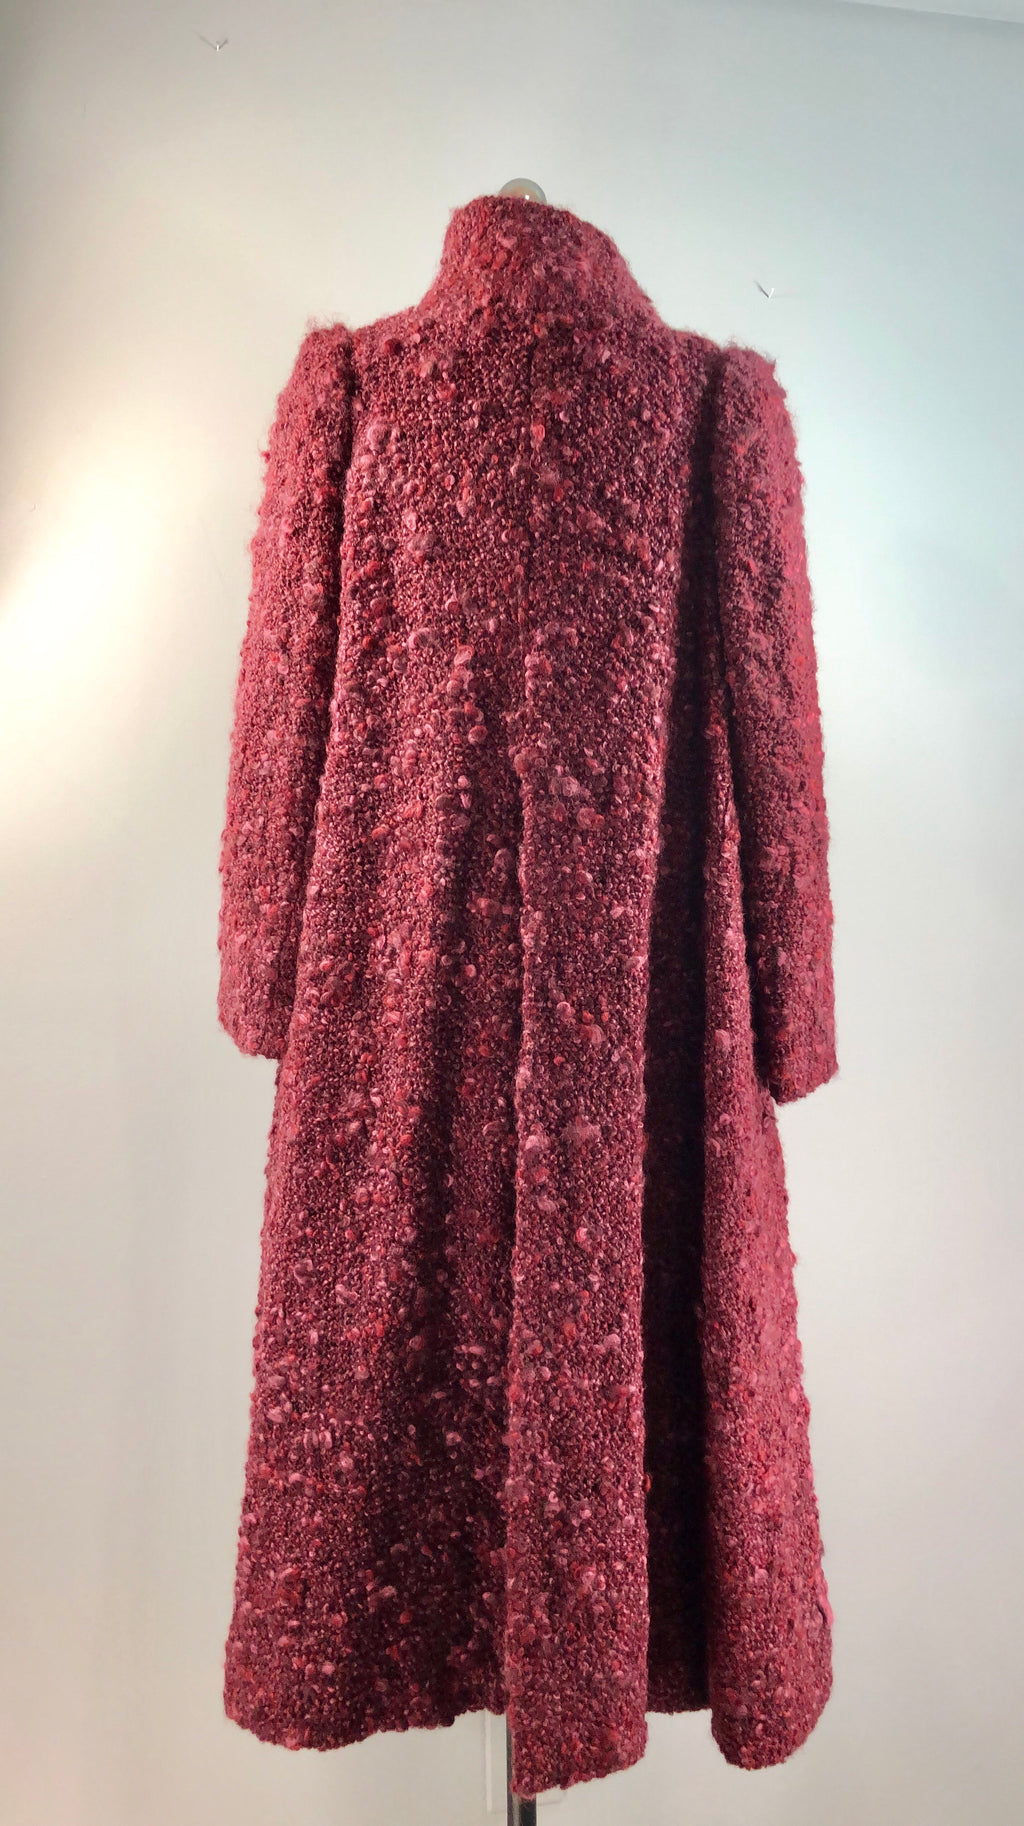 Arnold Scaasi 70s Vintage 1970s Purple Burgundy Boucle Wool Swing Coat 36 bust